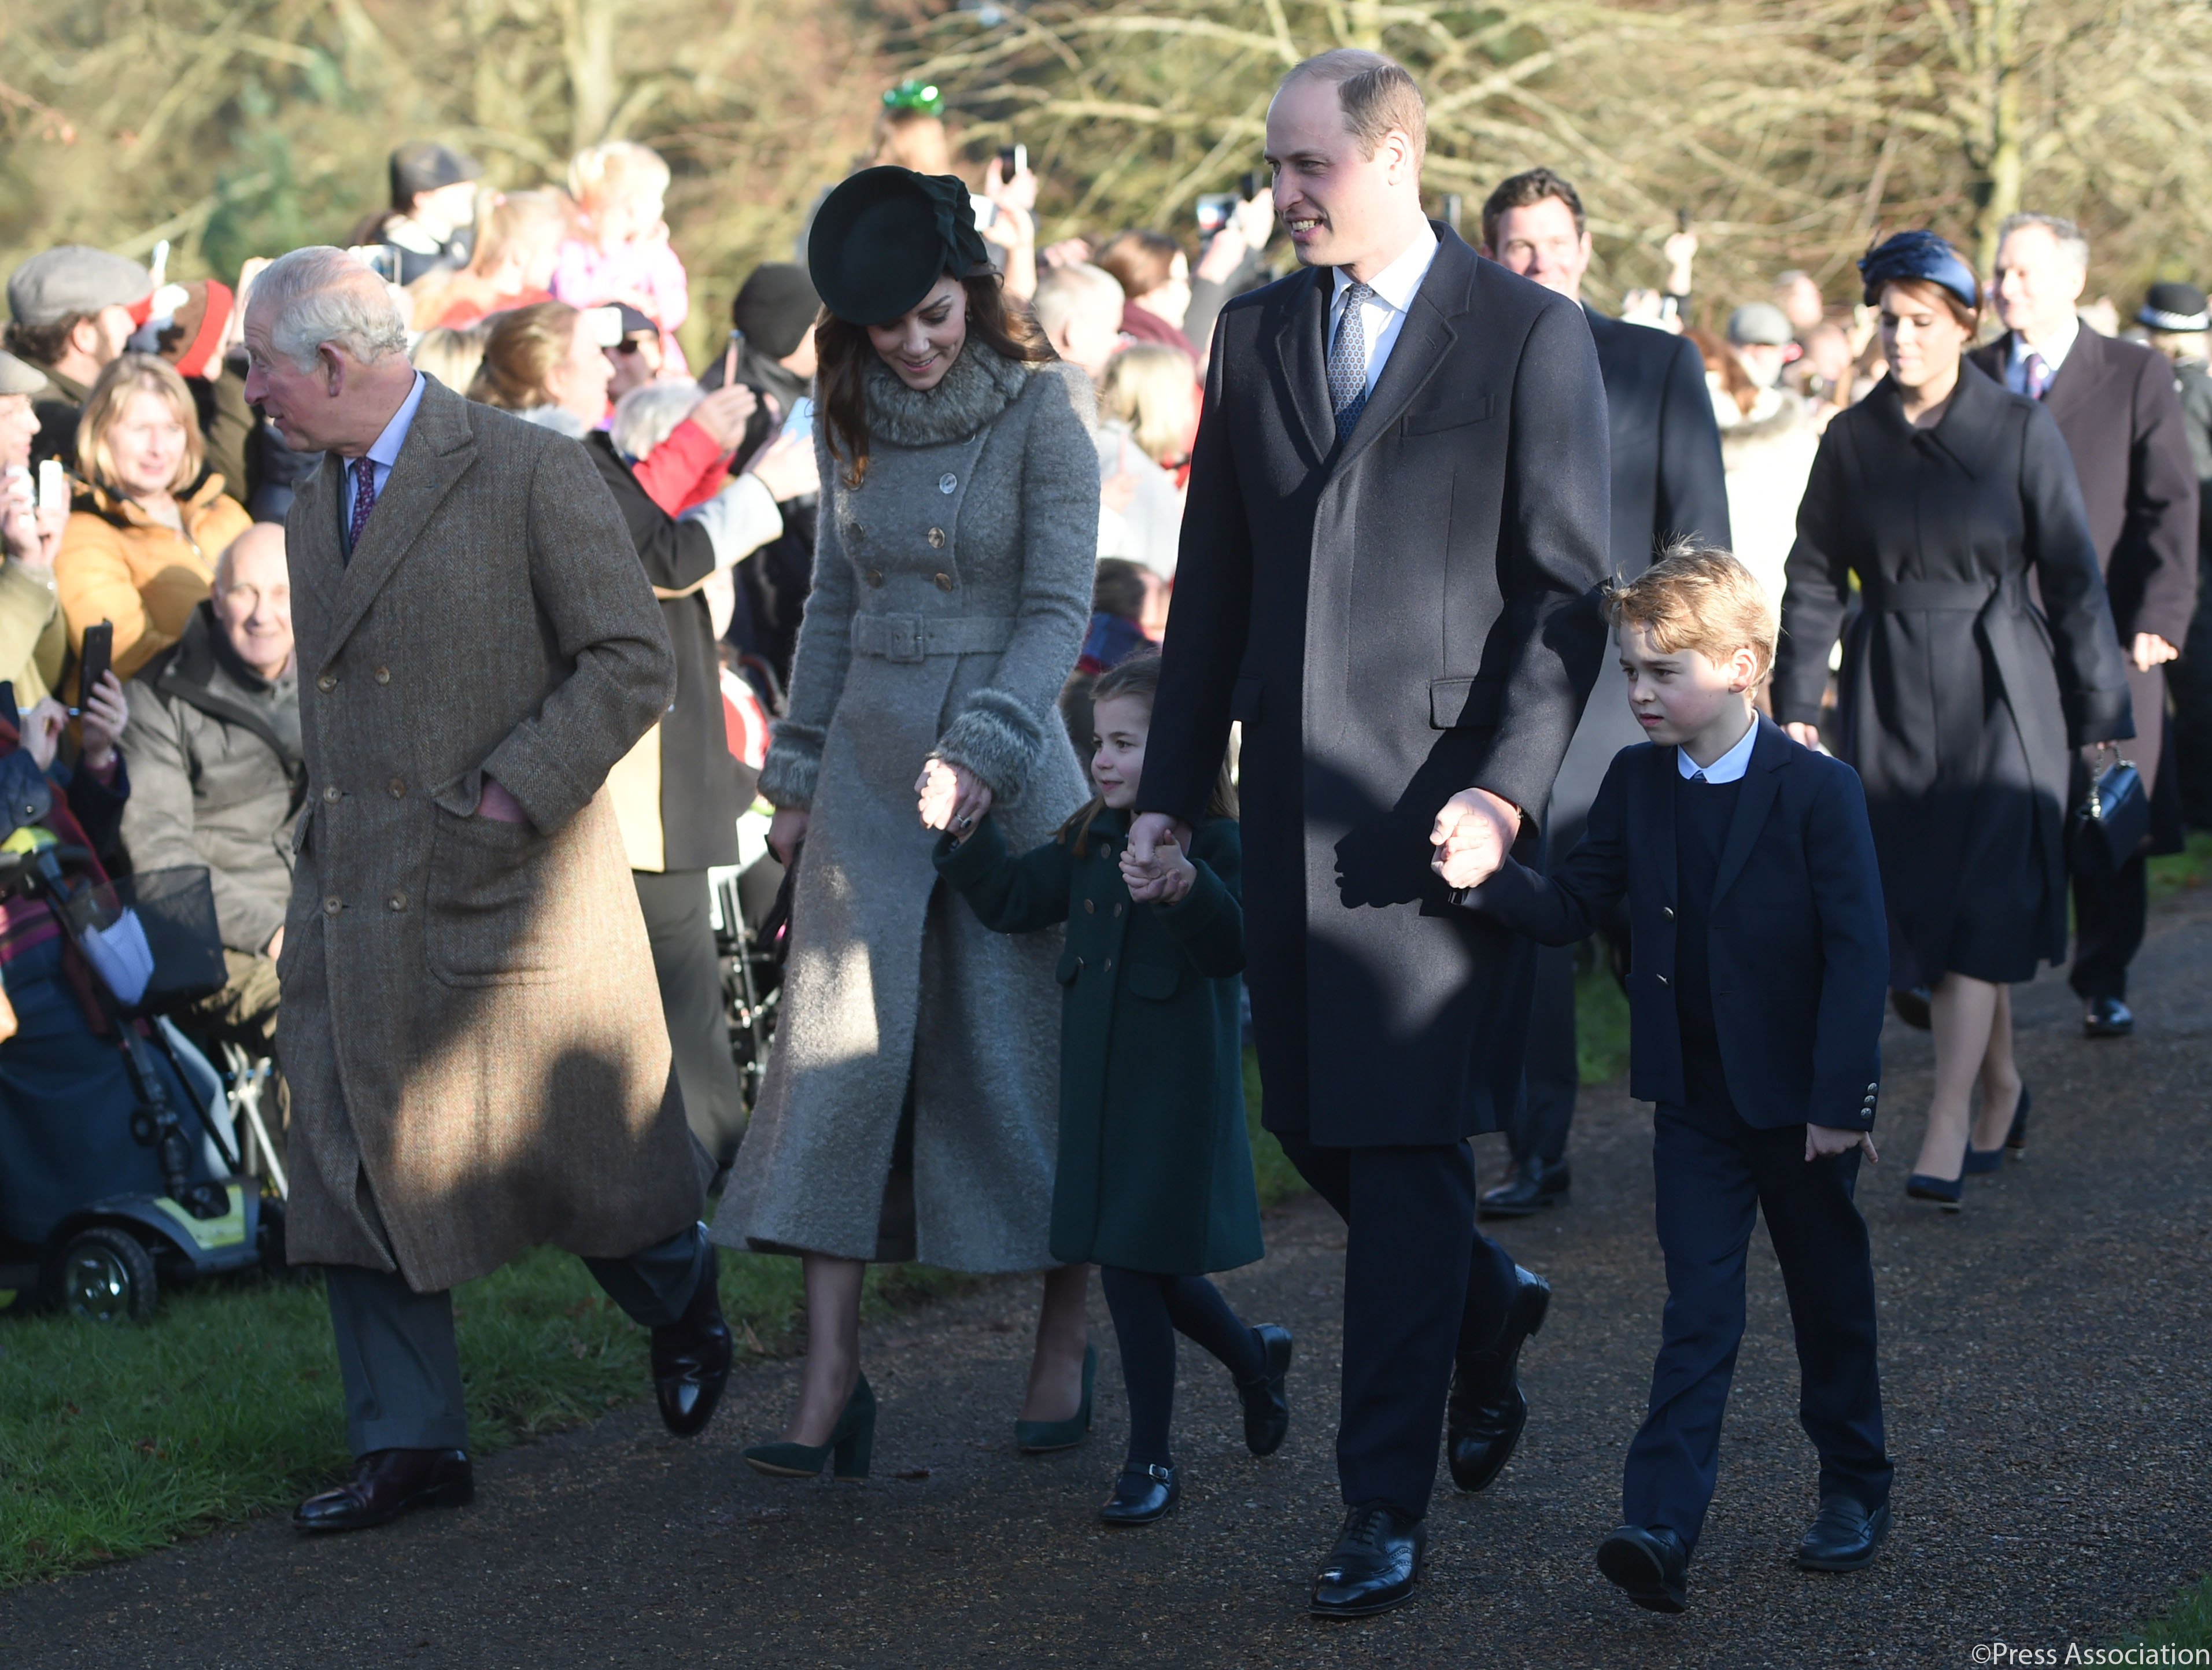 The Prince of Wales, The Duke and Duchess of Cambridge, Prince George and Princess Charlotte arrive for St Mary Magdalene Church in Sandringham